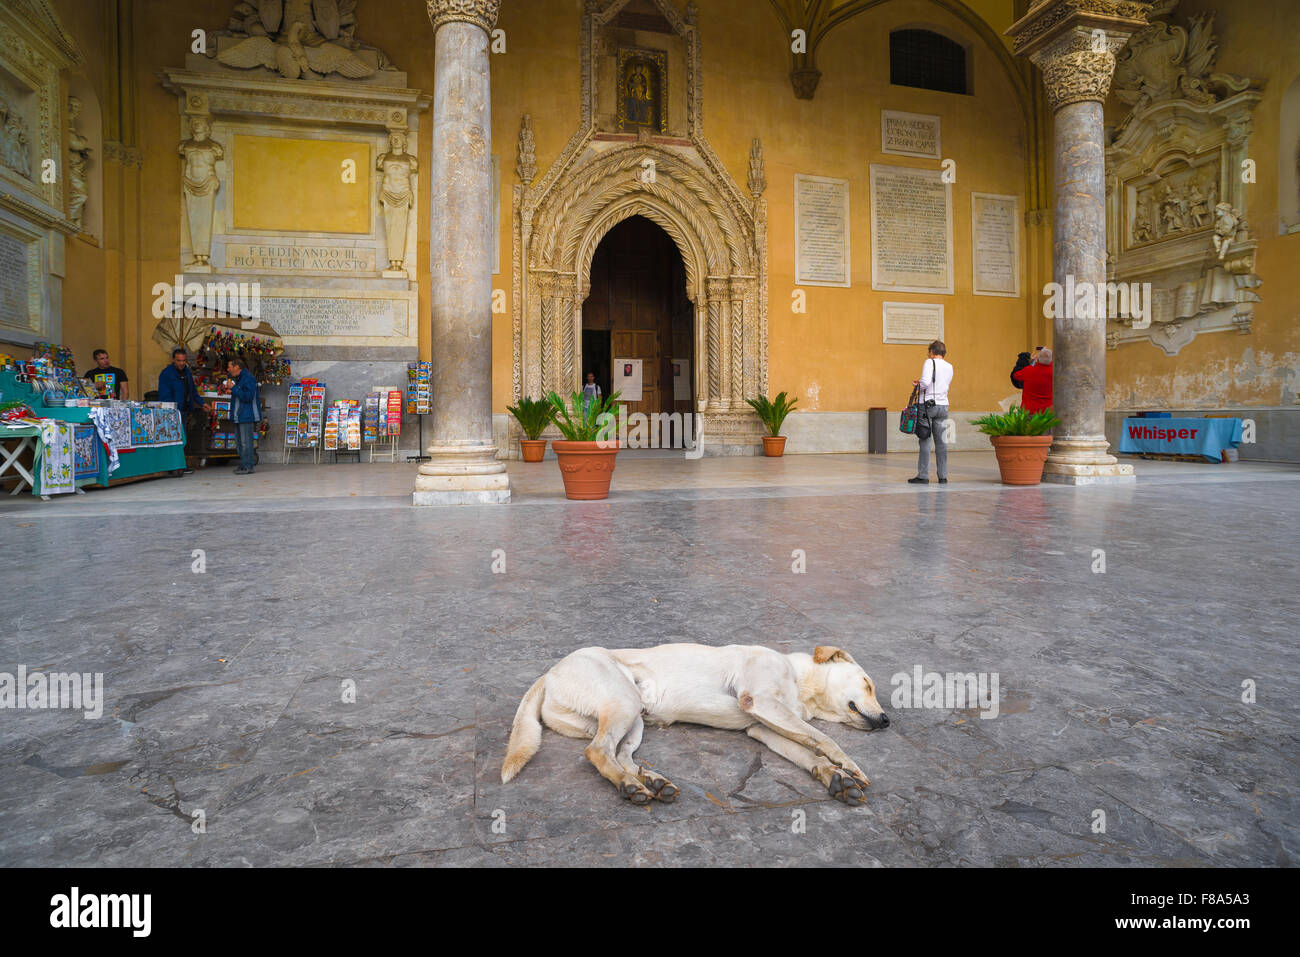 Dog sleeping, view of a dog asleep on a summer day near the entrance to the cathedral in Palermo, Sicily. - Stock Image